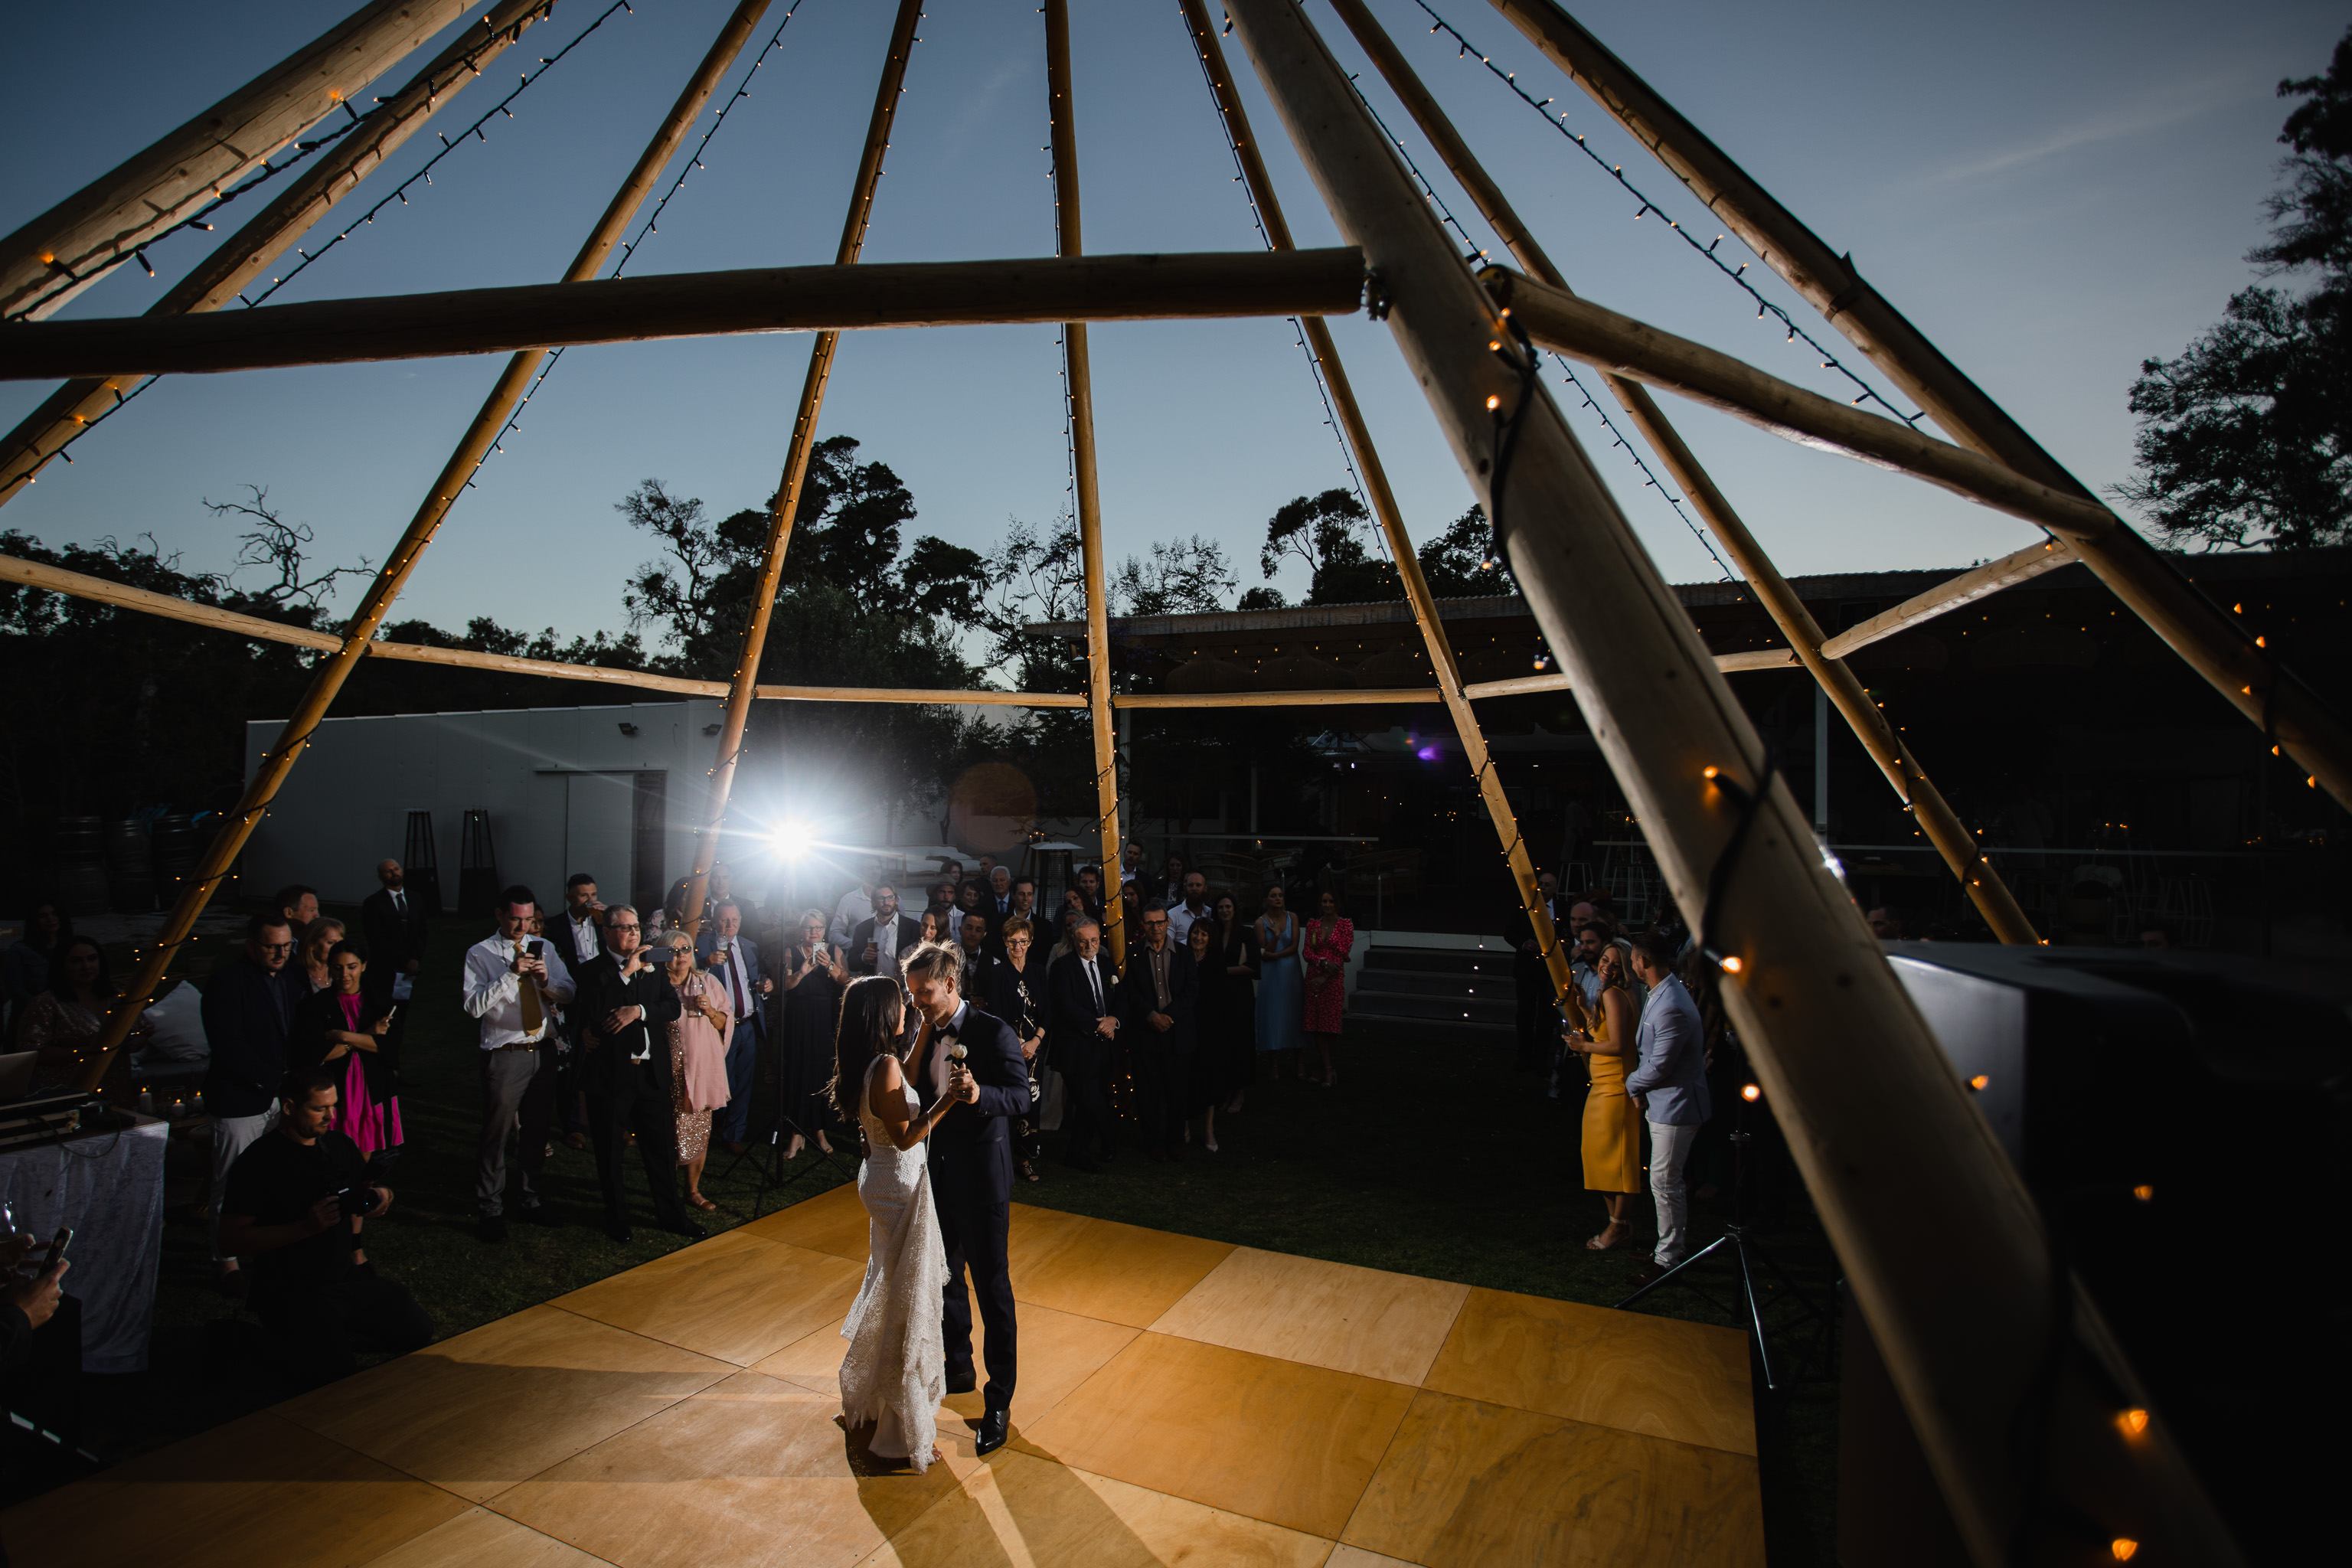 First dance at Meelup Farmhouse wedding under giant naked tipi frame from Yallingup Event Hire